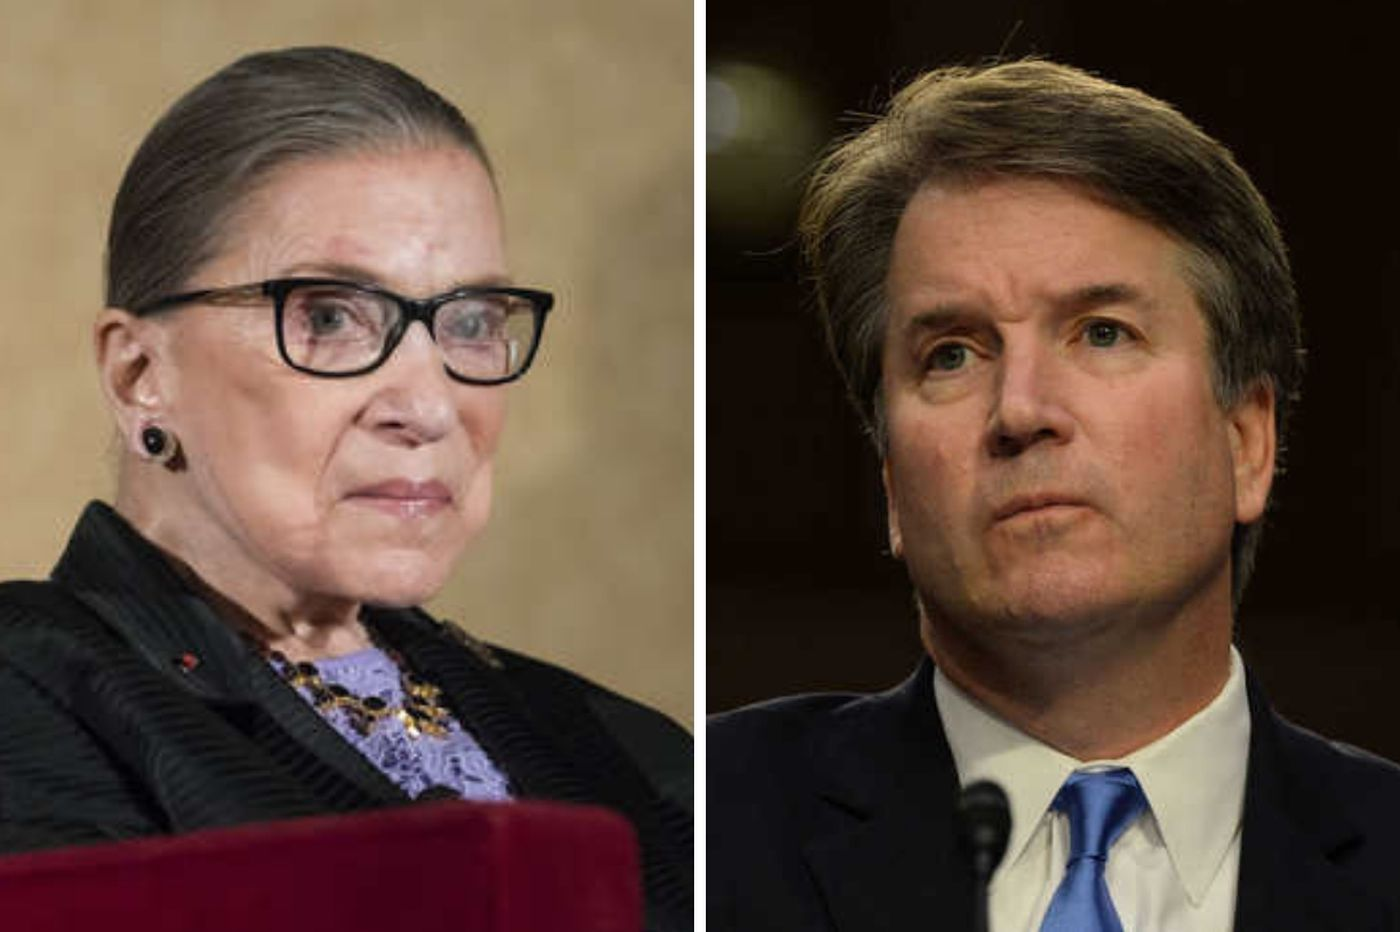 Ruth Bader Ginsburg can learn something from Brett Kavanaugh | Opinion